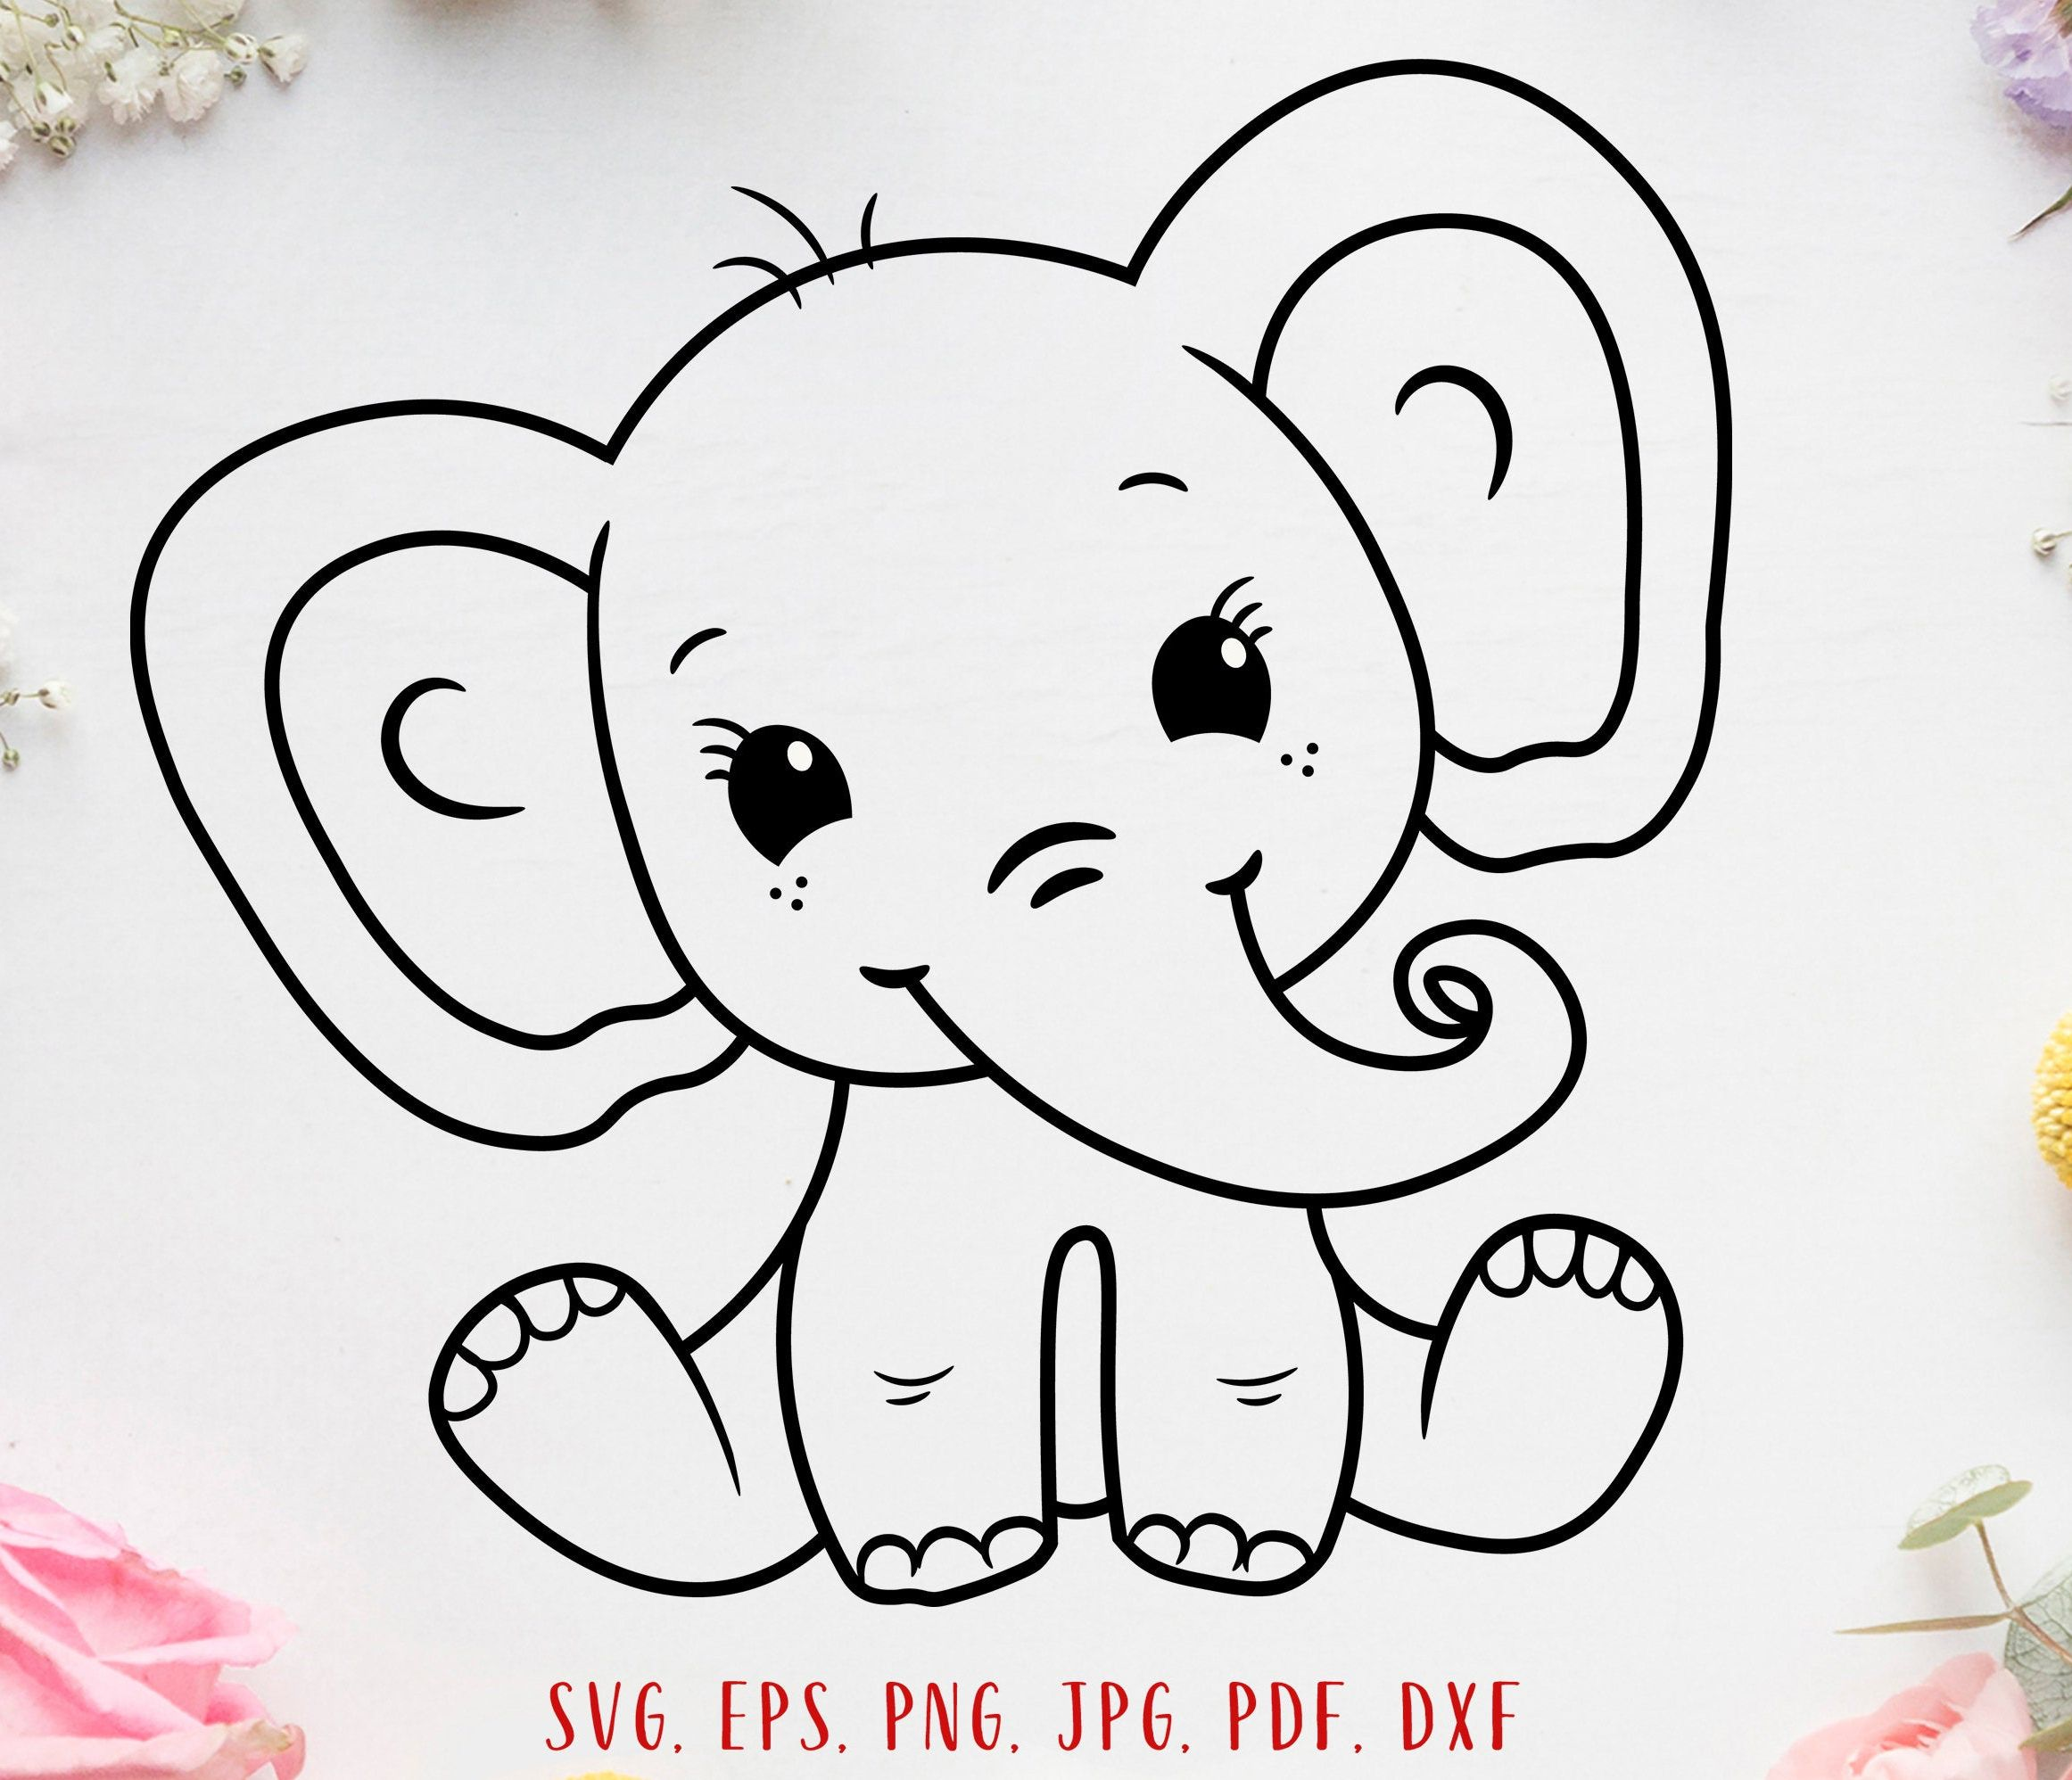 Pin On Cute Animals Svg Download icons in all formats or edit them for your designs. pin on cute animals svg